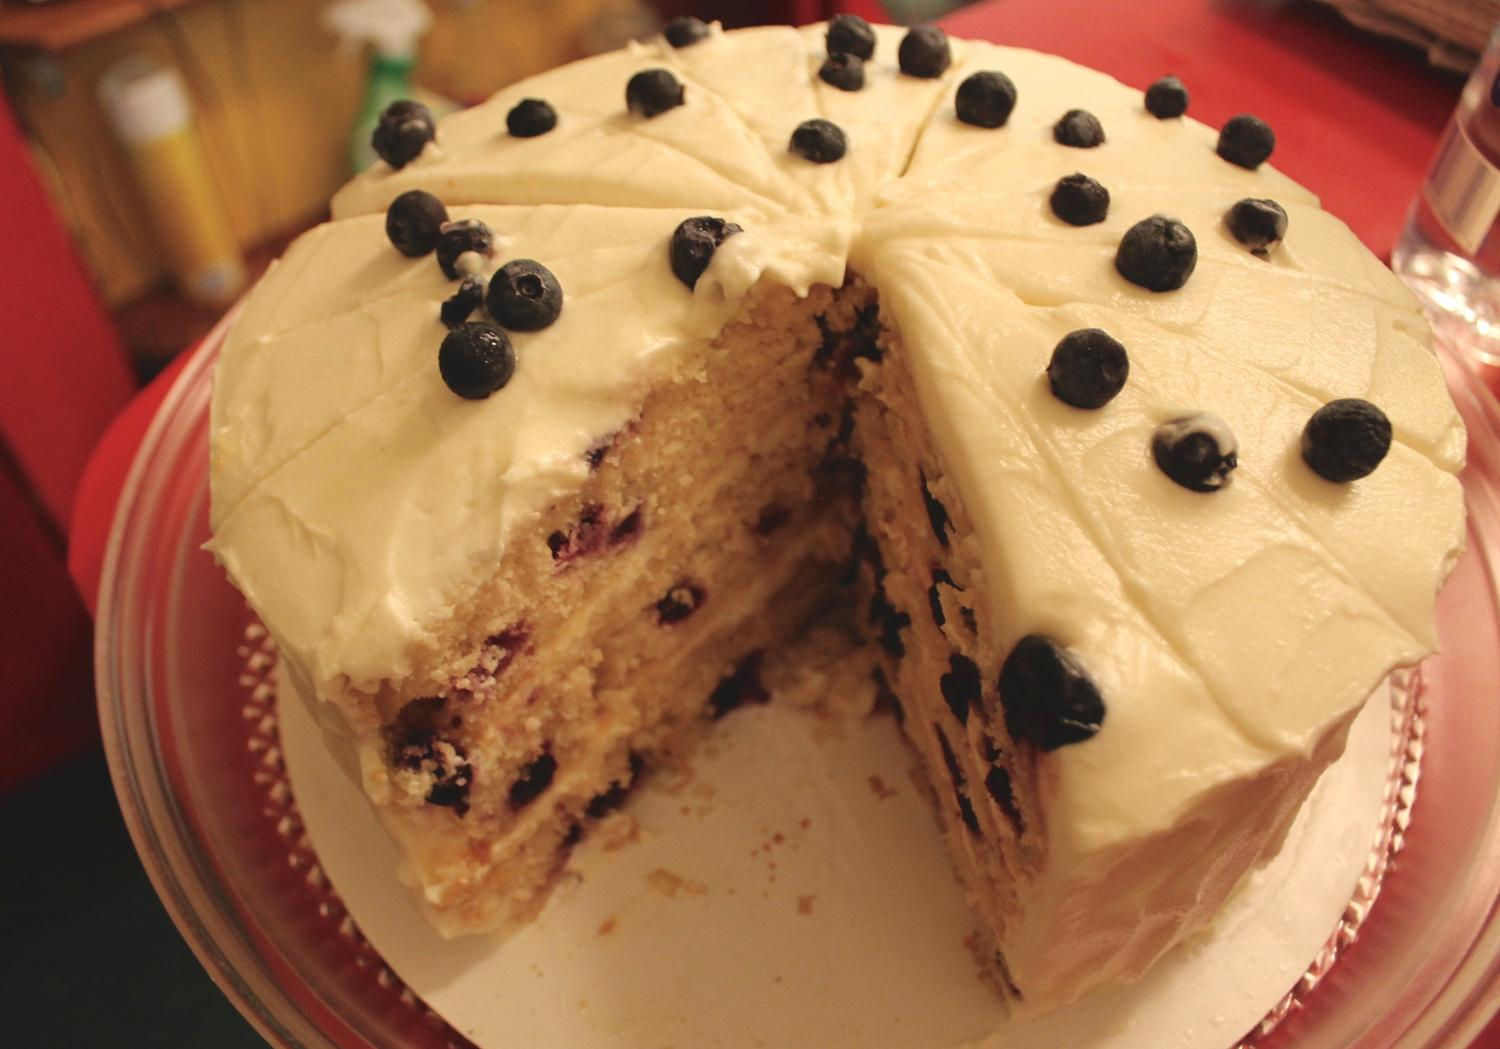 Lemon Blueberry Cake with cream cheese frosting / Image: Rose Brewington // Published: 7.29.17